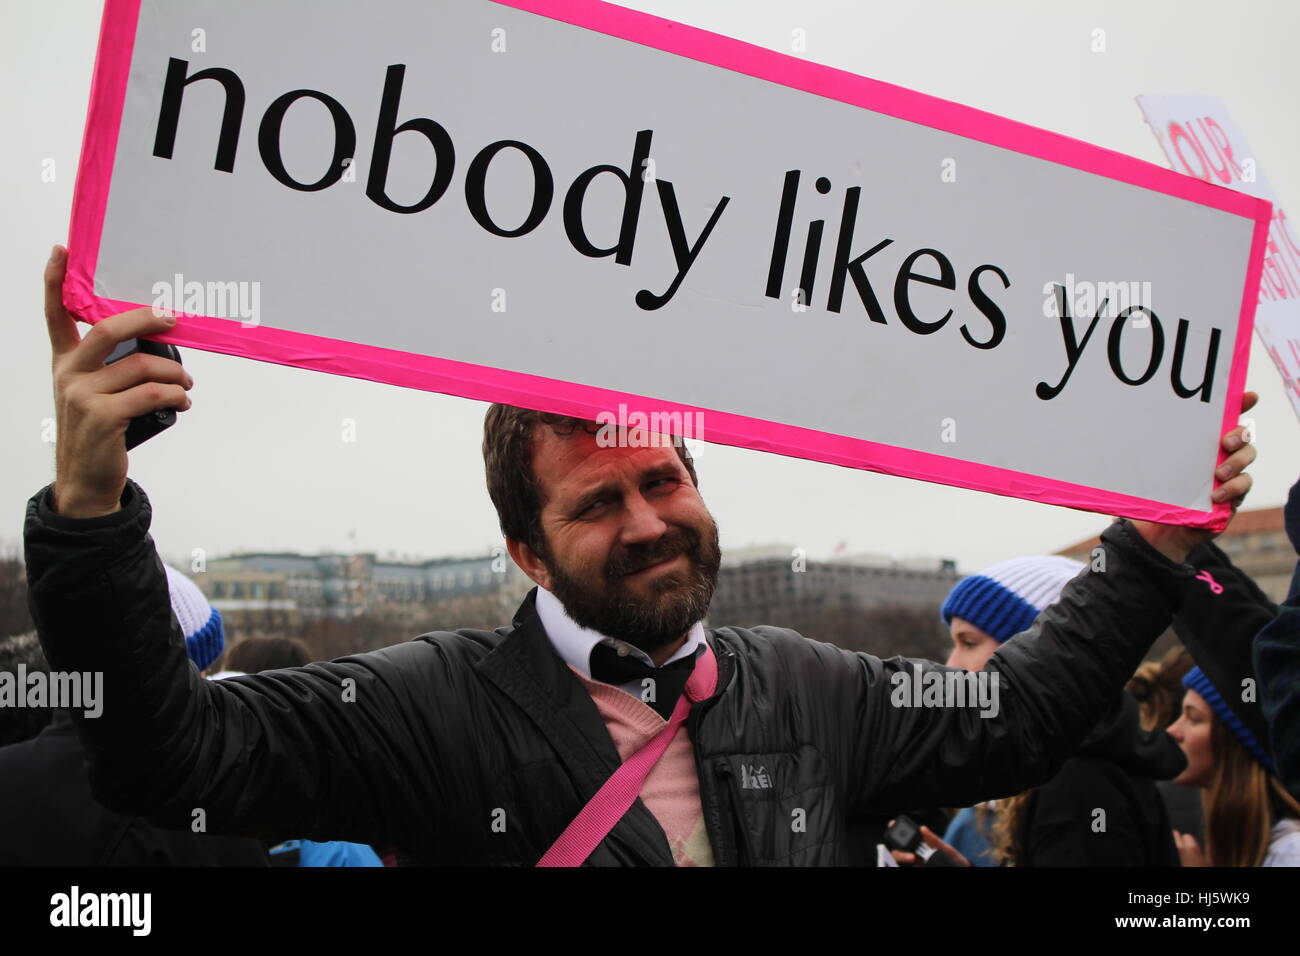 District of Columbia, USA. 21 Jan, 2017. A man grins holding a simple sign that says 'nobody likes you' - Stock Image